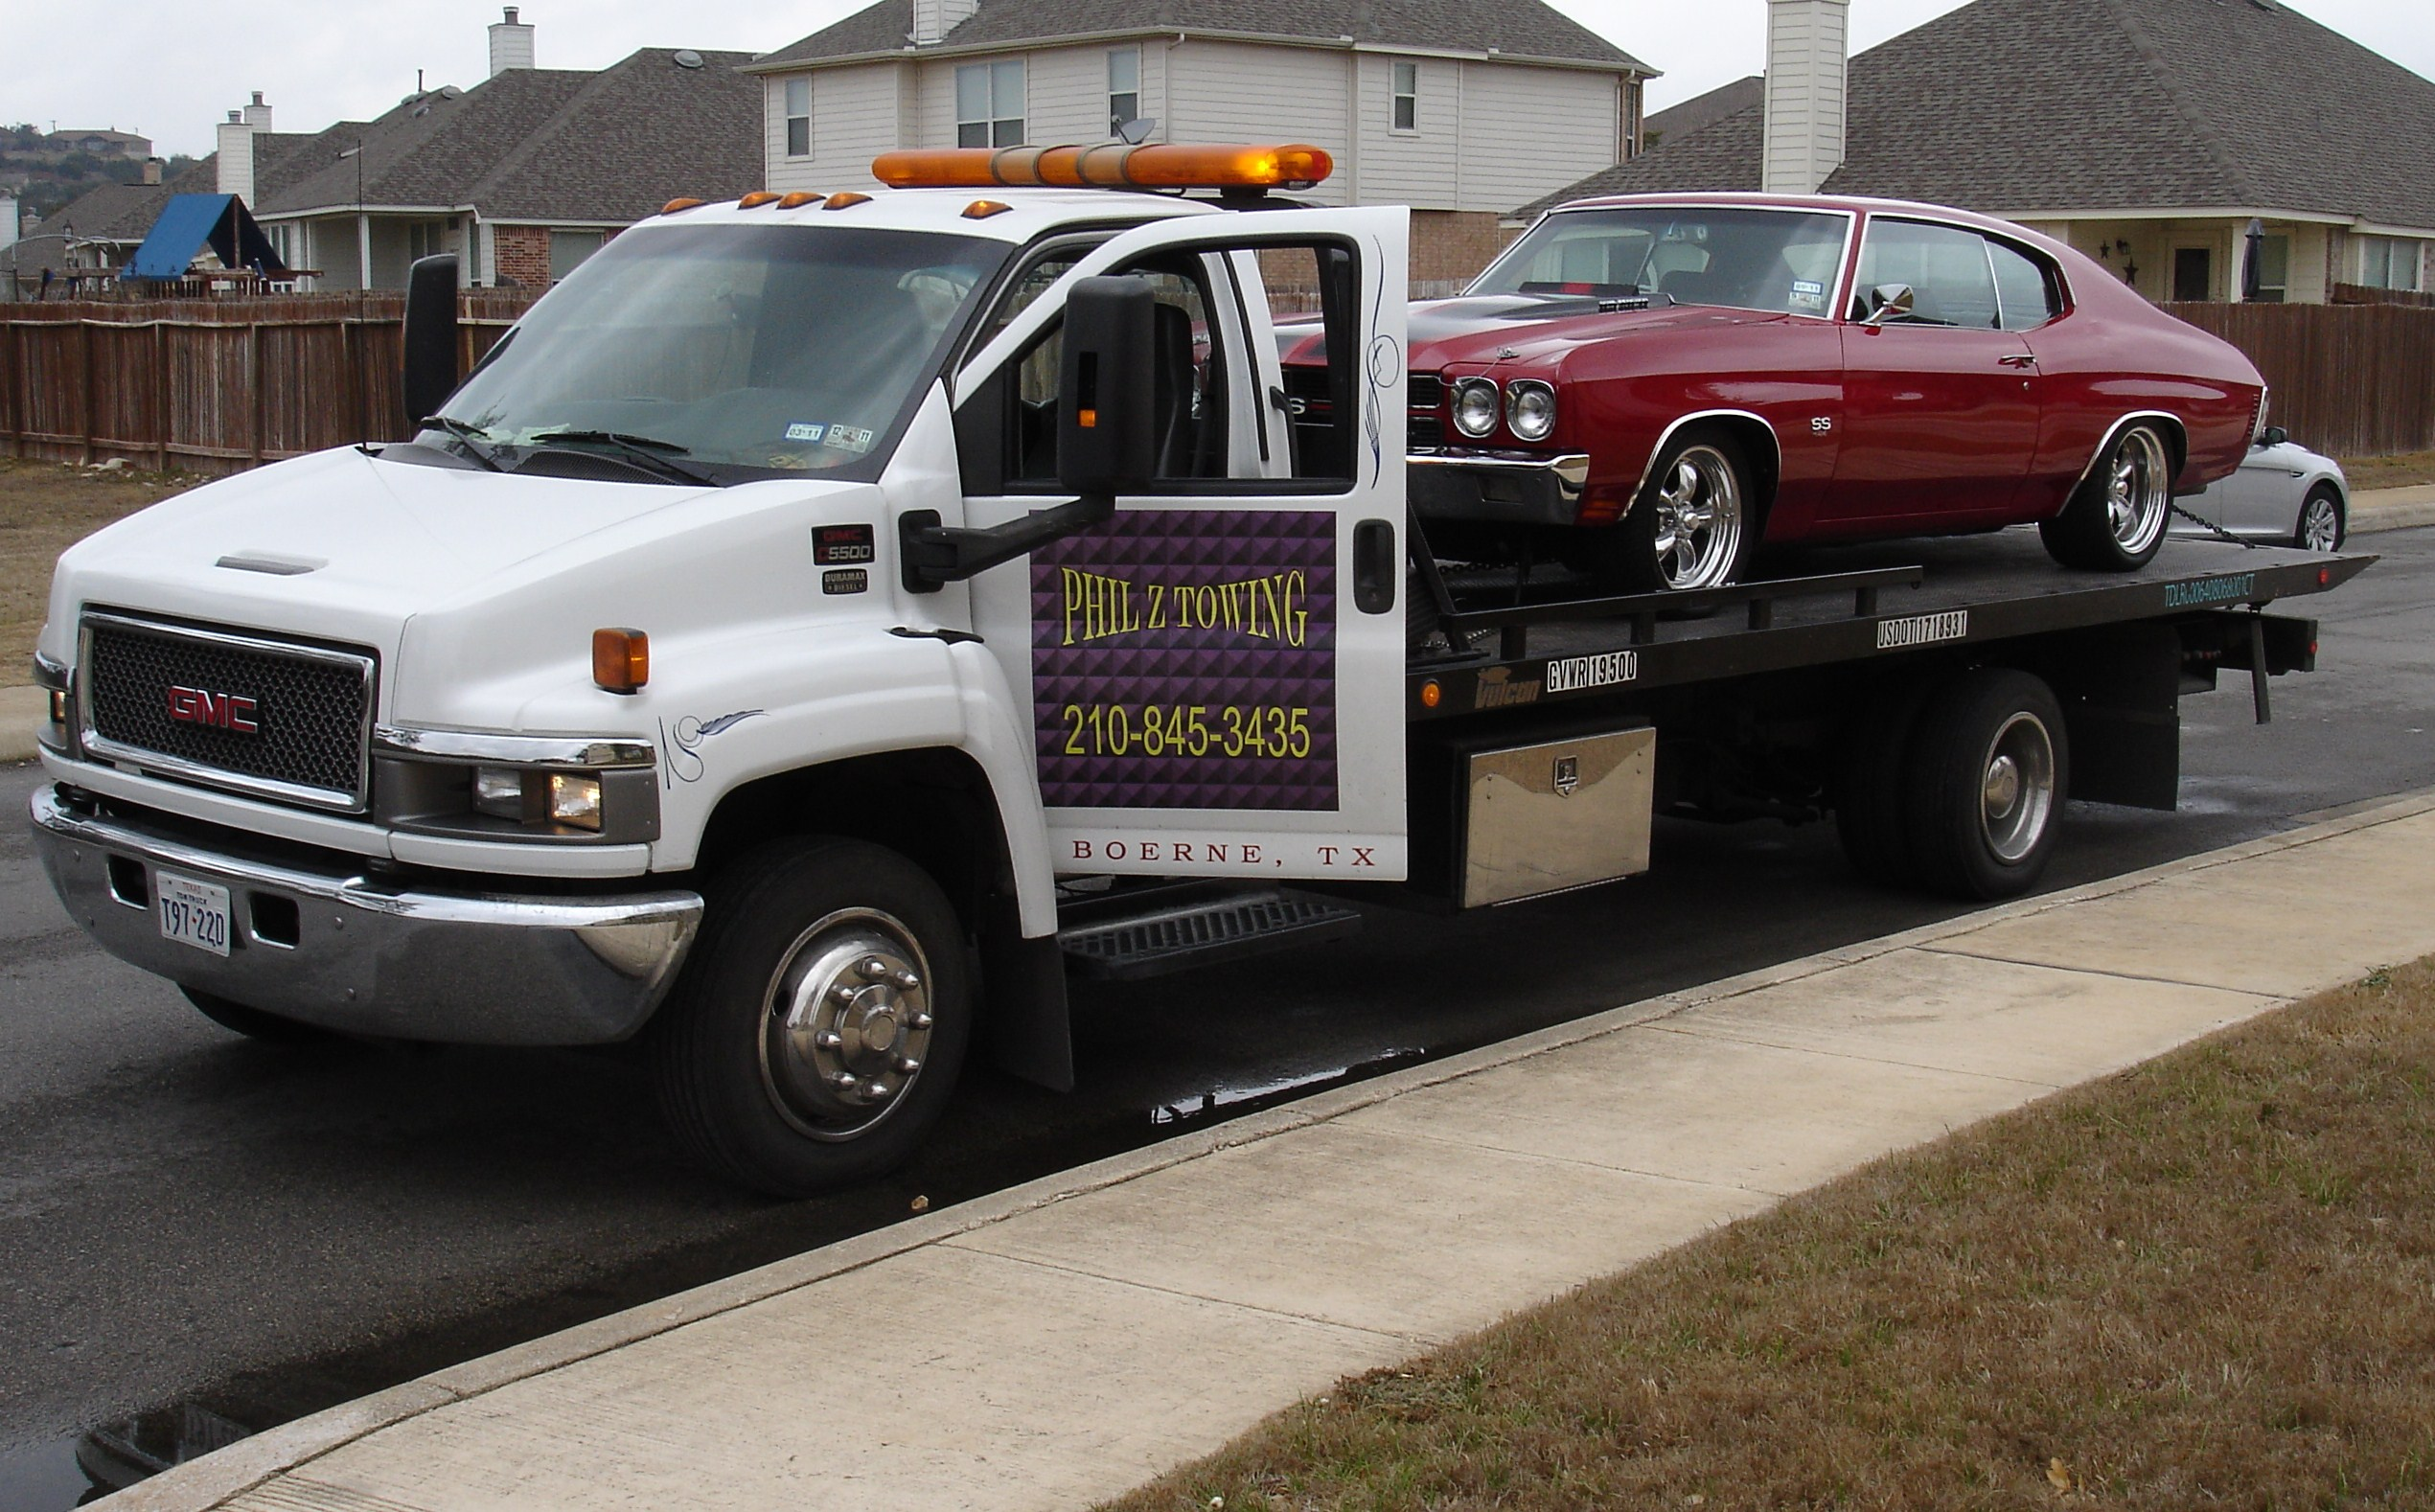 Towing Car Phil Z Towing | Flatbed Towing San Antonio/towing Service